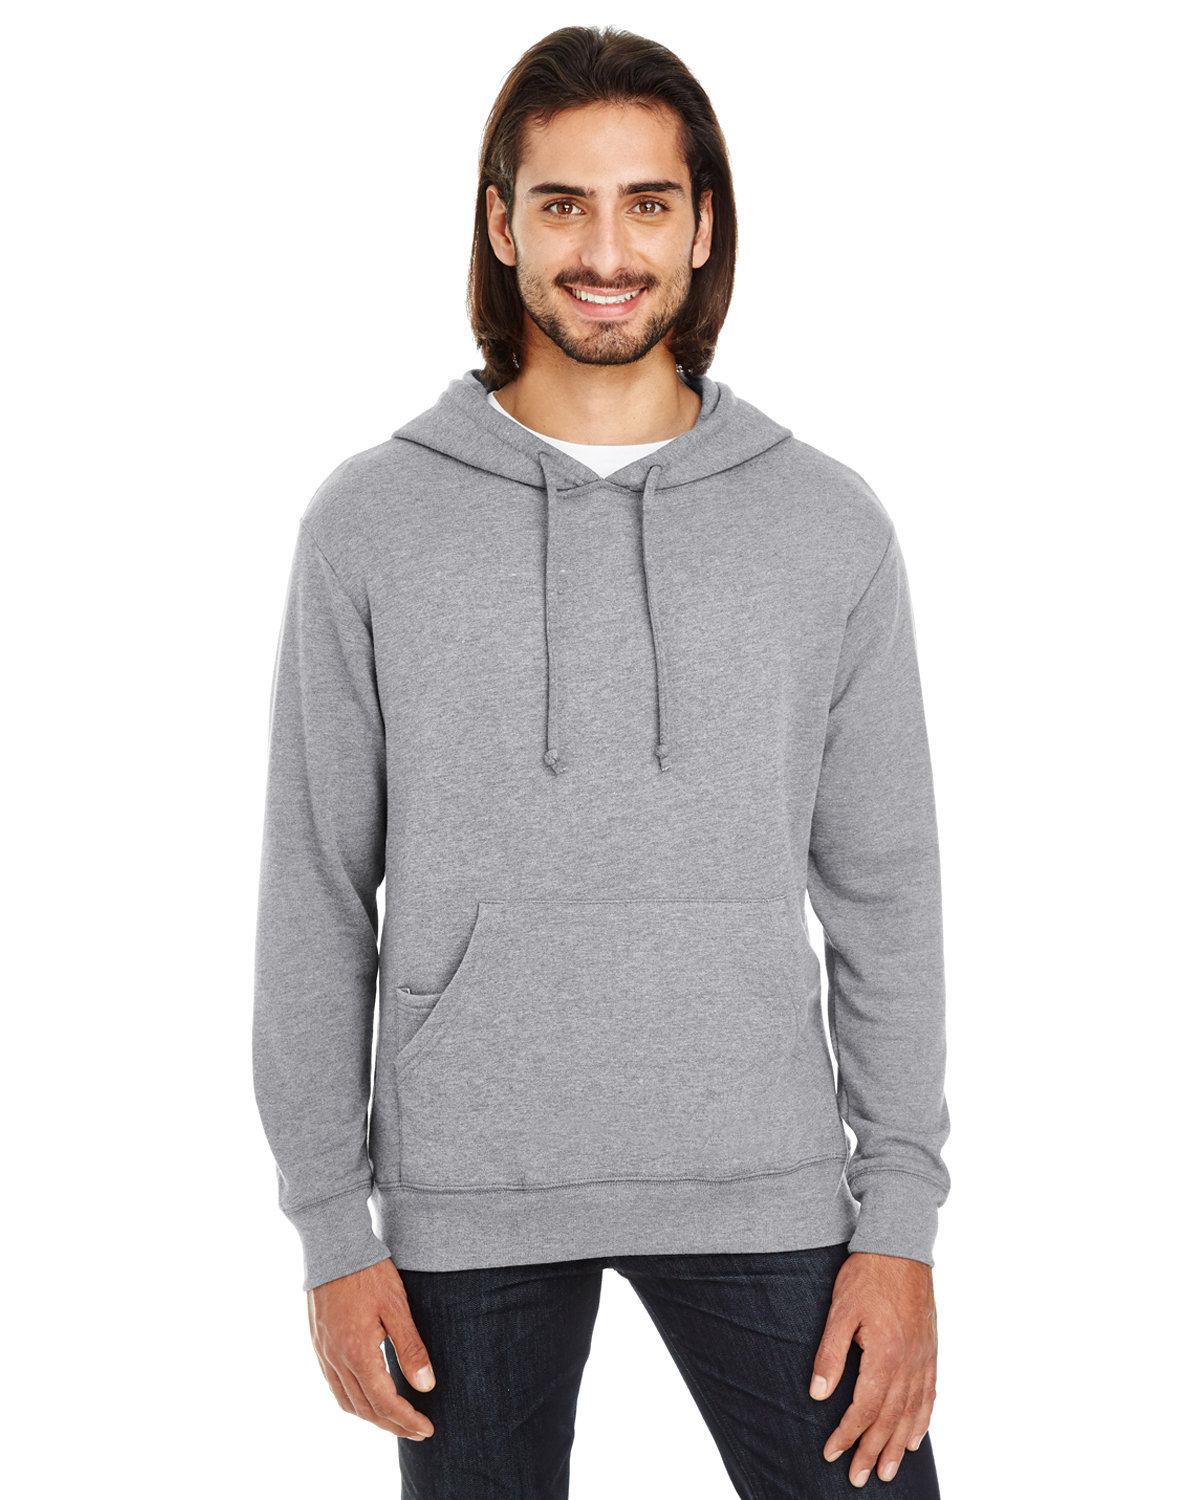 Threadfast Apparel Unisex Triblend French Terry Hoodie CHARCOAL HEATHER